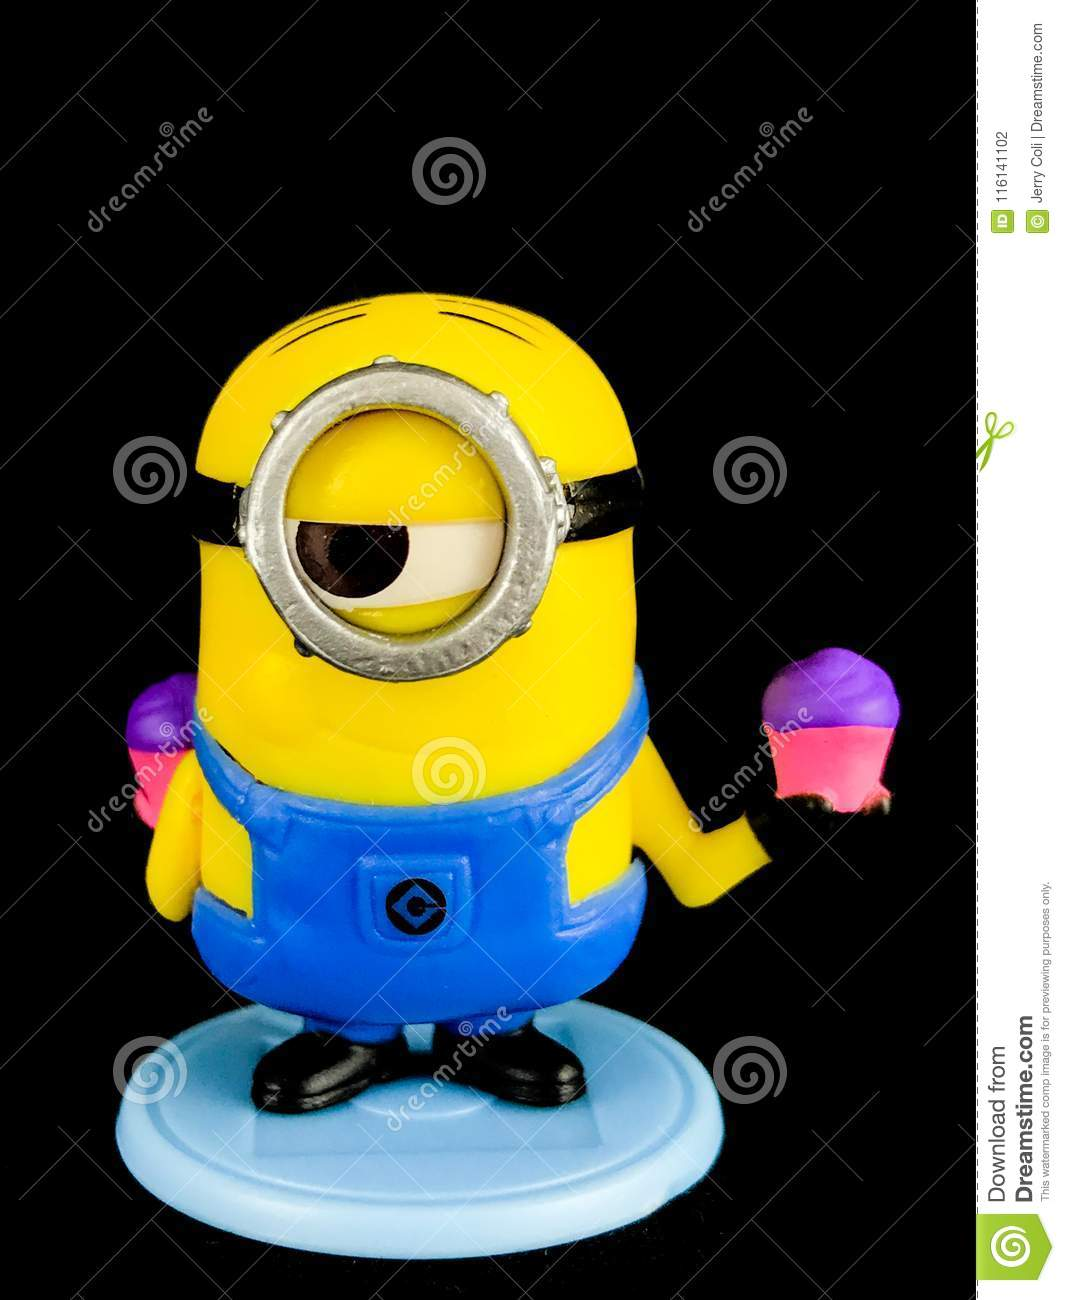 A Minion From Despicable Me Franchise Editorial Photography Image